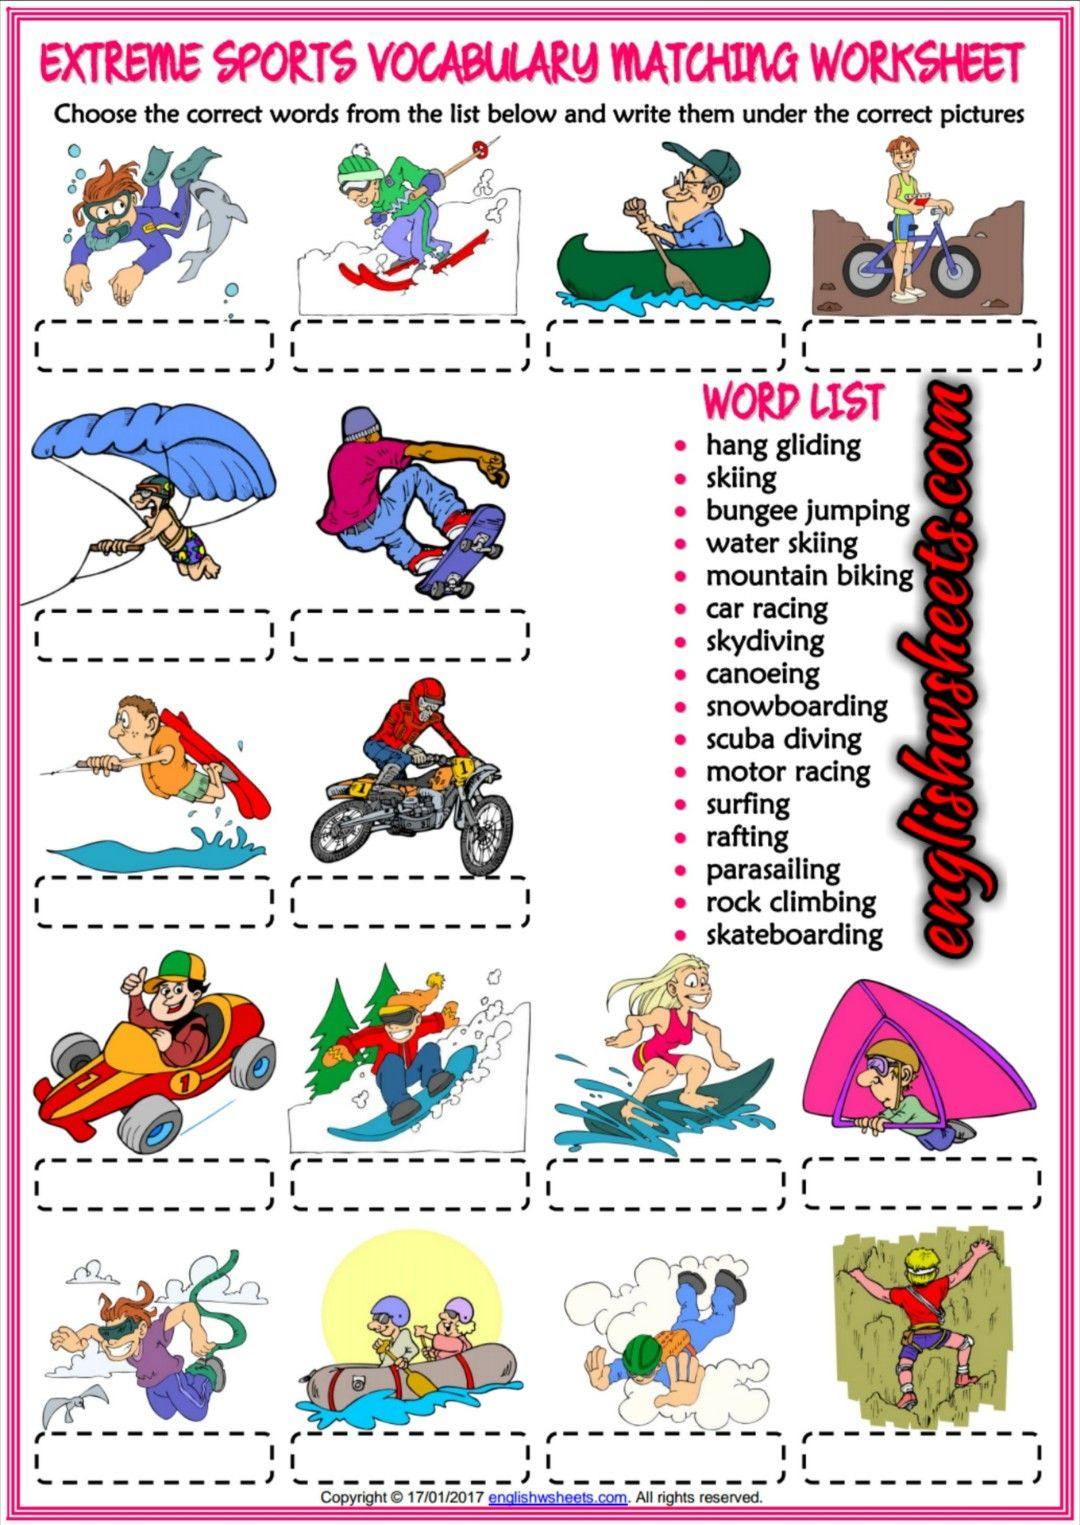 Chalean Extreme Printable Worksheet